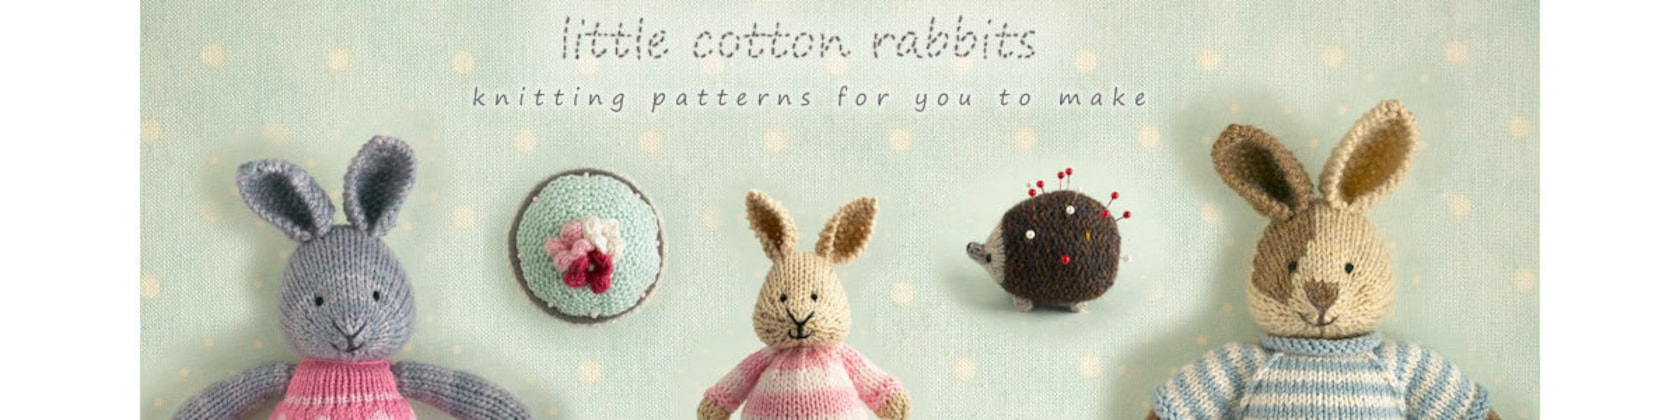 sweetly detailed toy animal knitting by Littlecottonrabbits